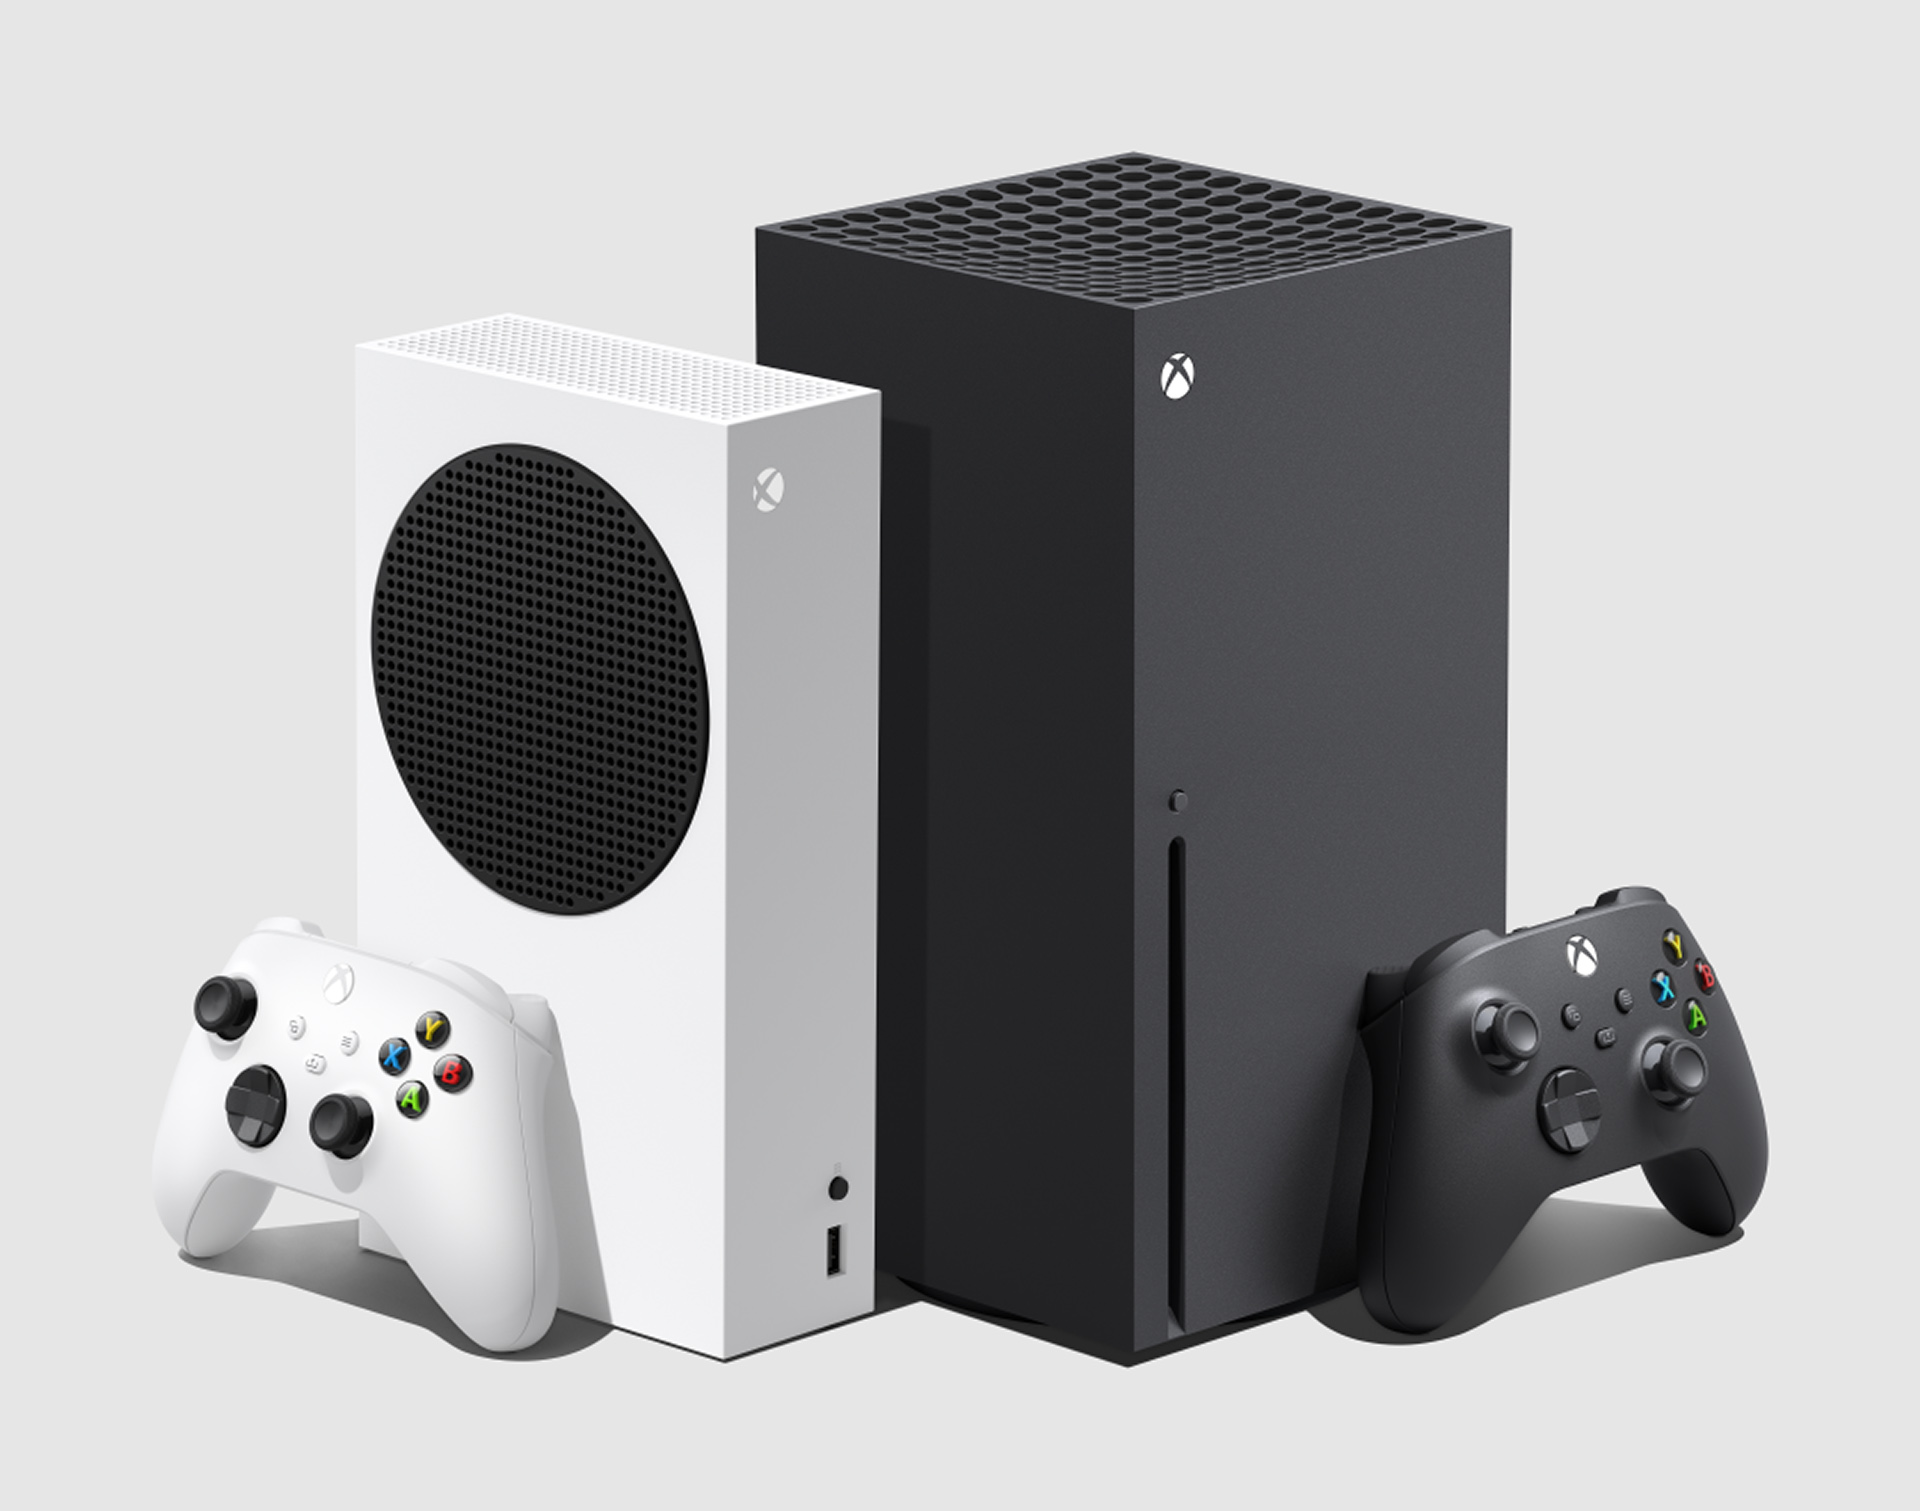 Xbox All Access gets you an Xbox Series X or Series S for a low monthly payment